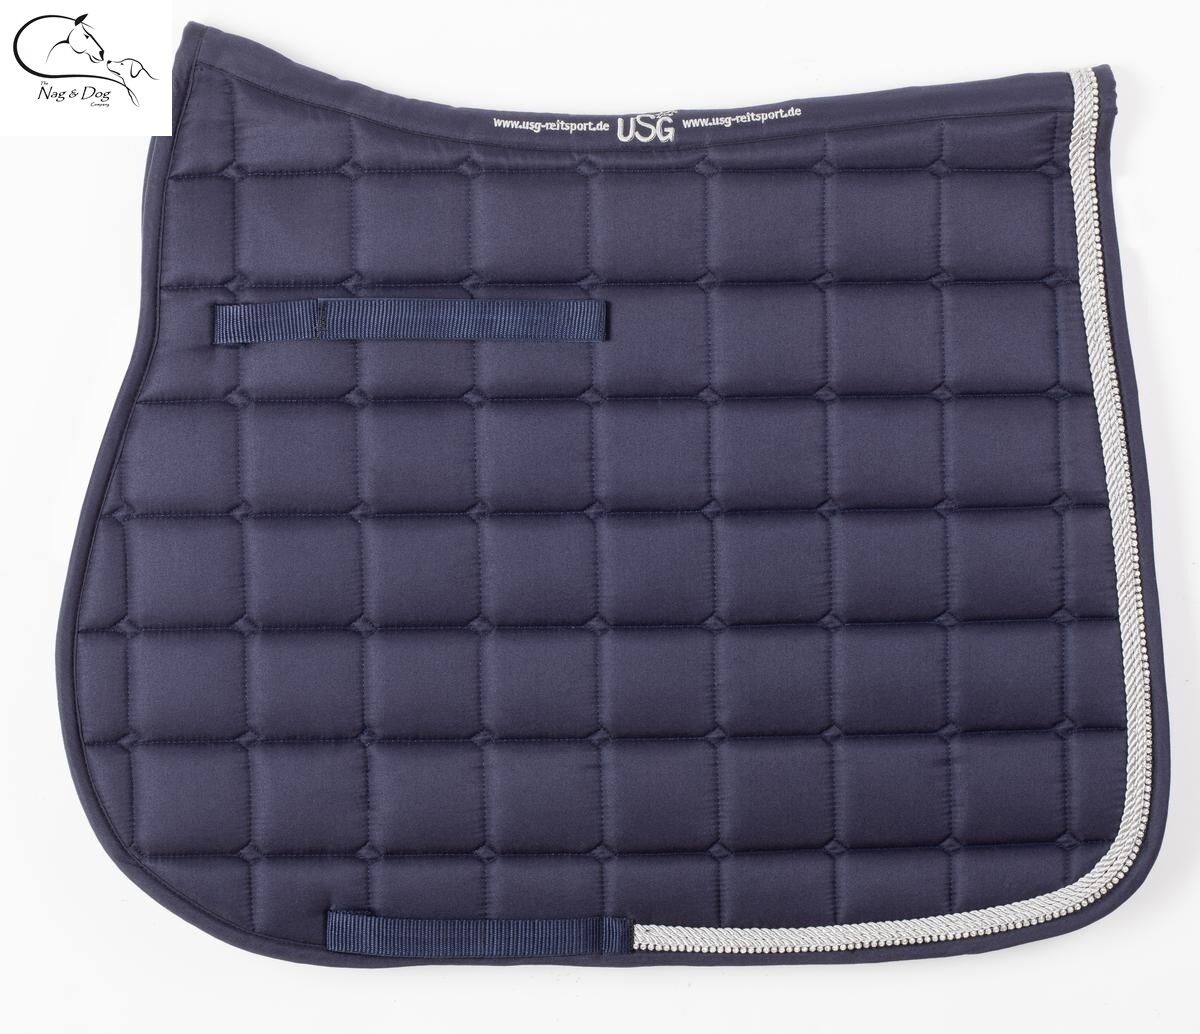 USG baroness Saddlecloth - Quilted saddlecloth & with double rope & saddlecloth crystals horse 39db37